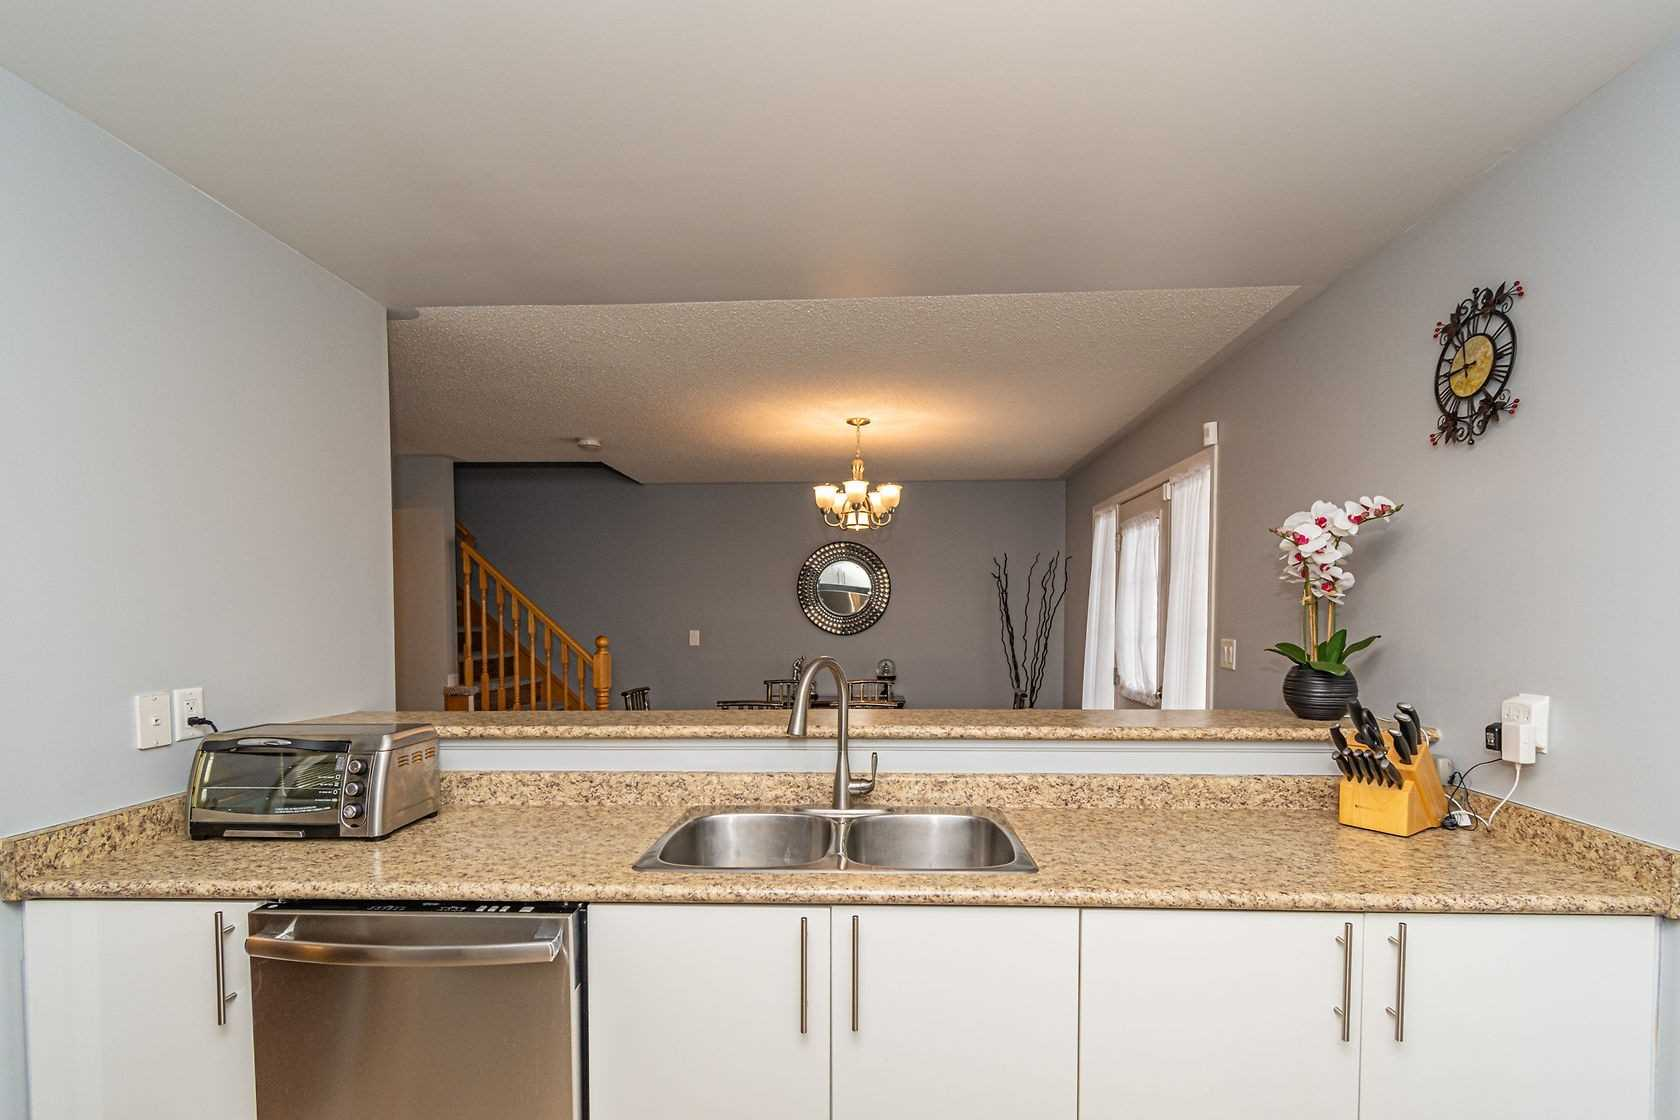 Image 6 of 20 showing inside of 3 Bedroom Att/Row/Twnhouse 3-Storey house for sale at 912 Ambroise Cres, Milton L9T0M2